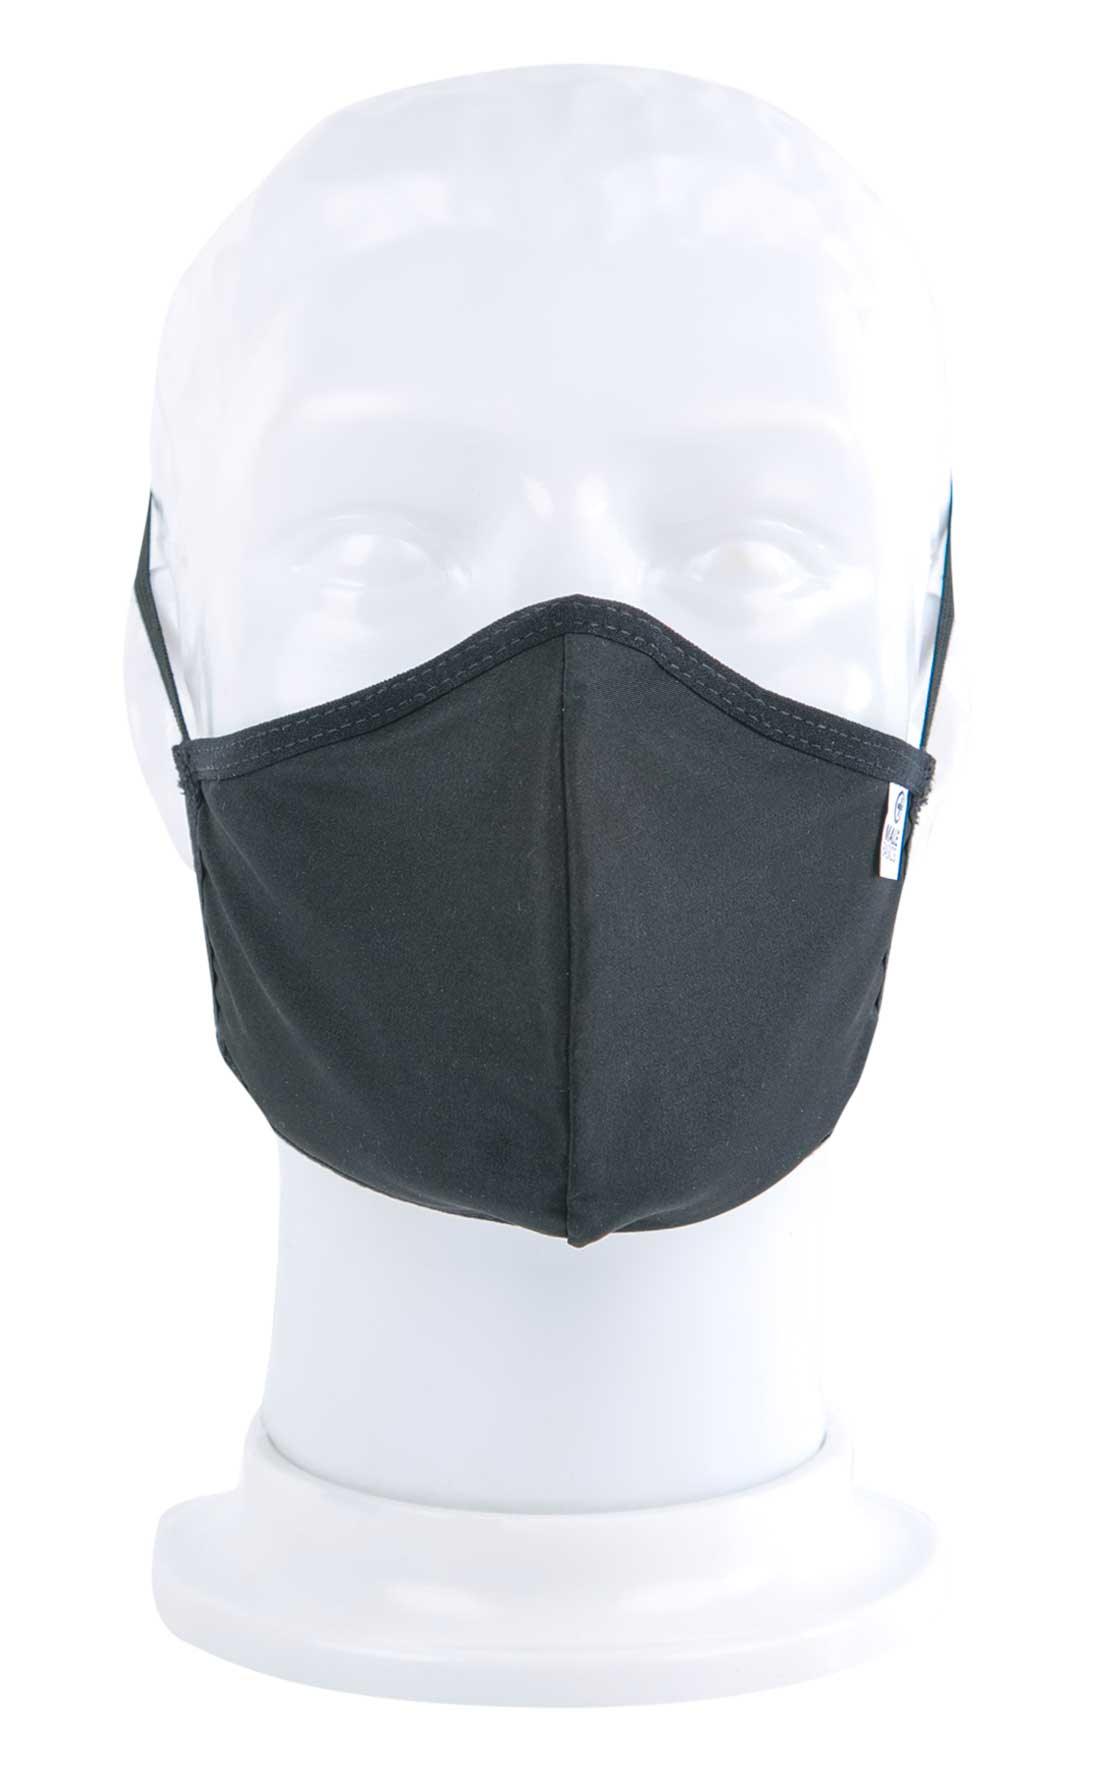 Men's face masks - Malebasics Defender Face Mask - Basic available at MensUnderwear.io - Image 1